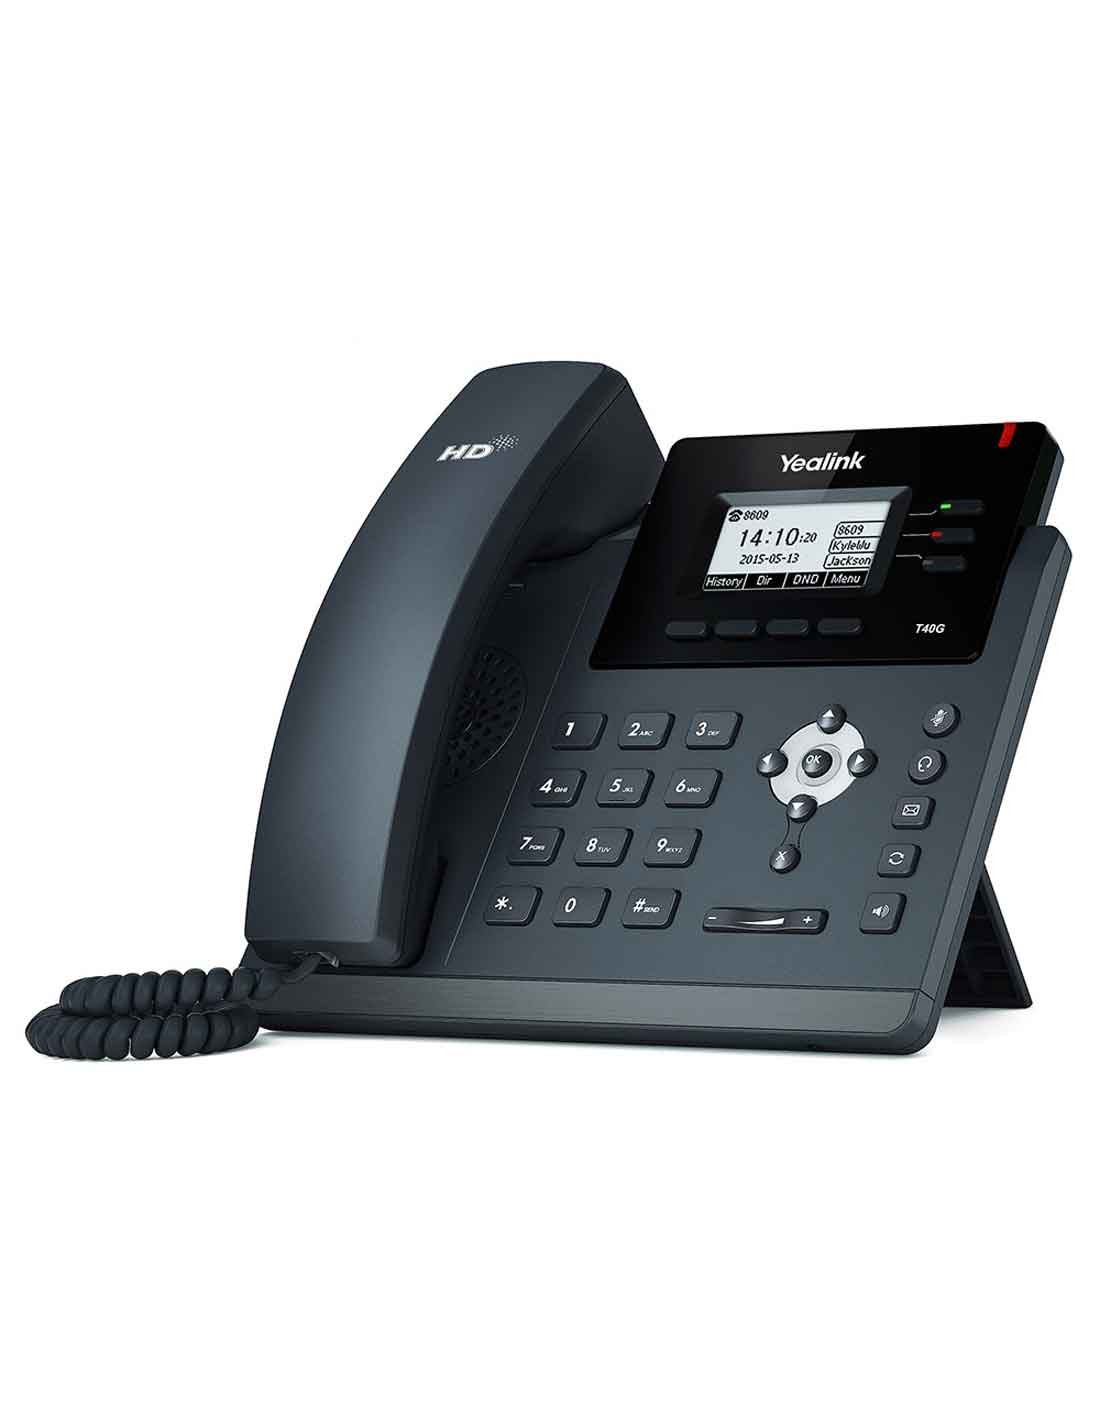 Yealink SIP-T40G IP Phone at a cheap price and free delivery in Dubai